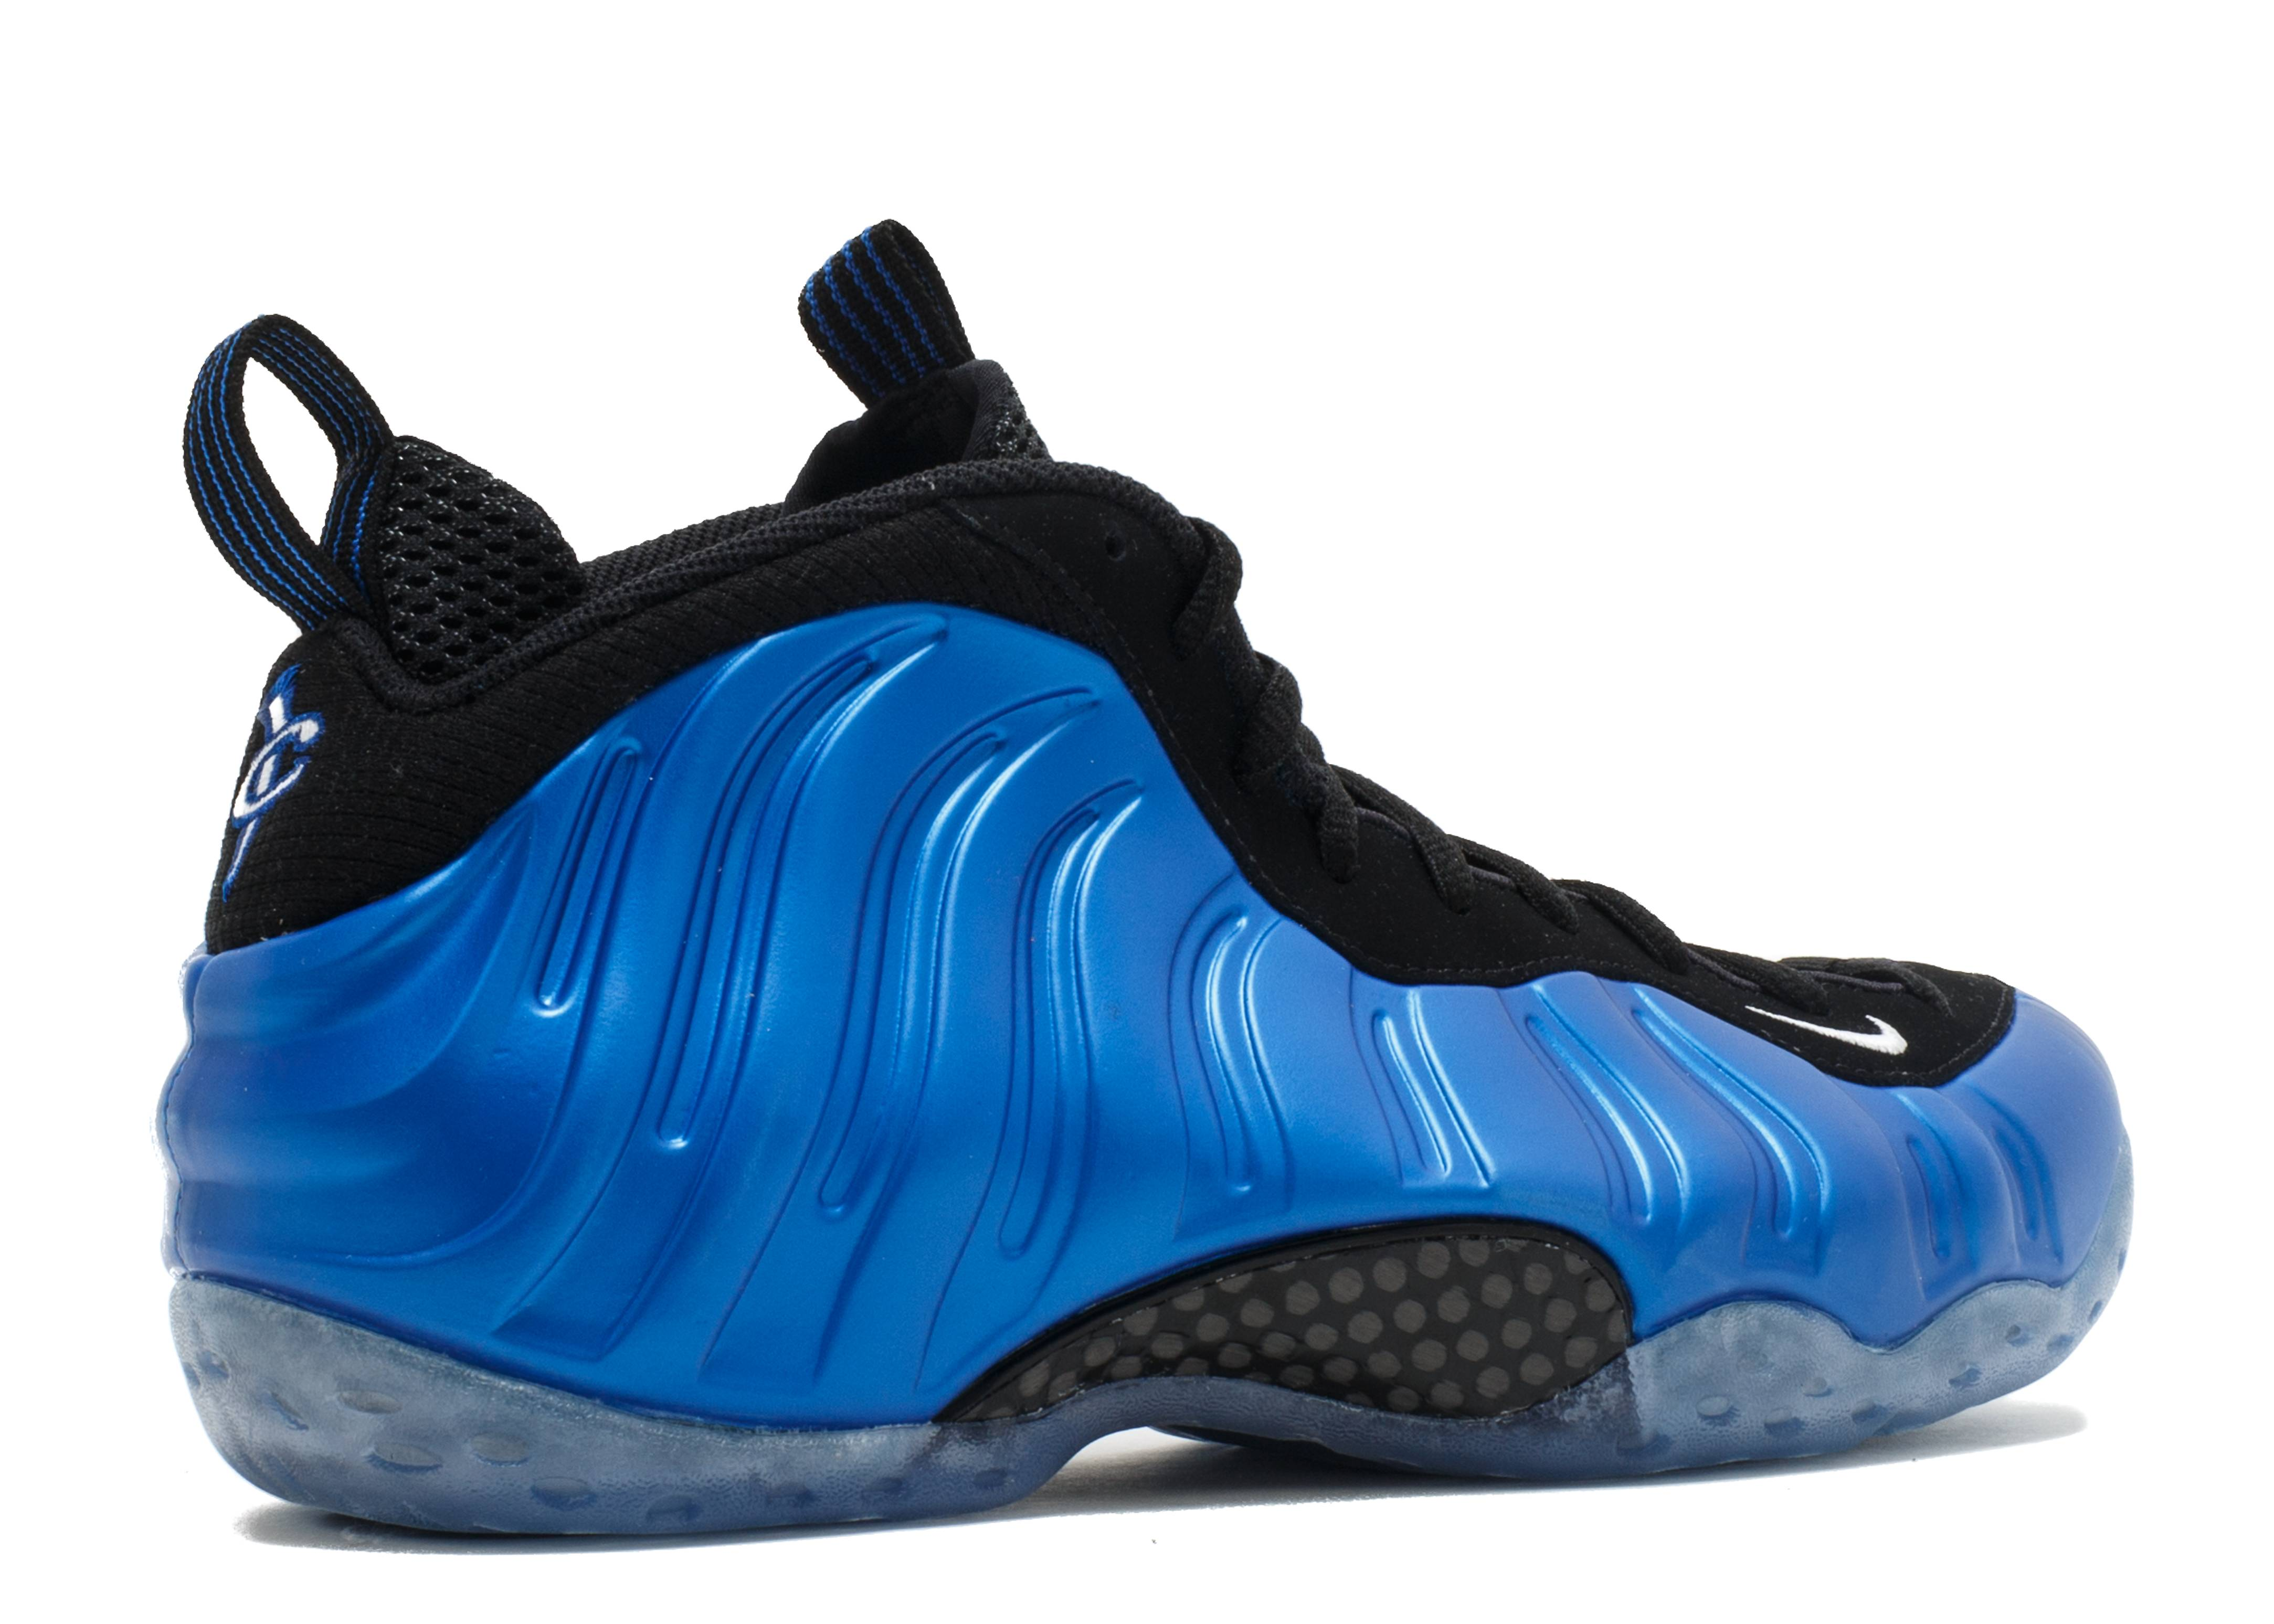 Nike Air Foamposite One Electrolime Video Review SBD